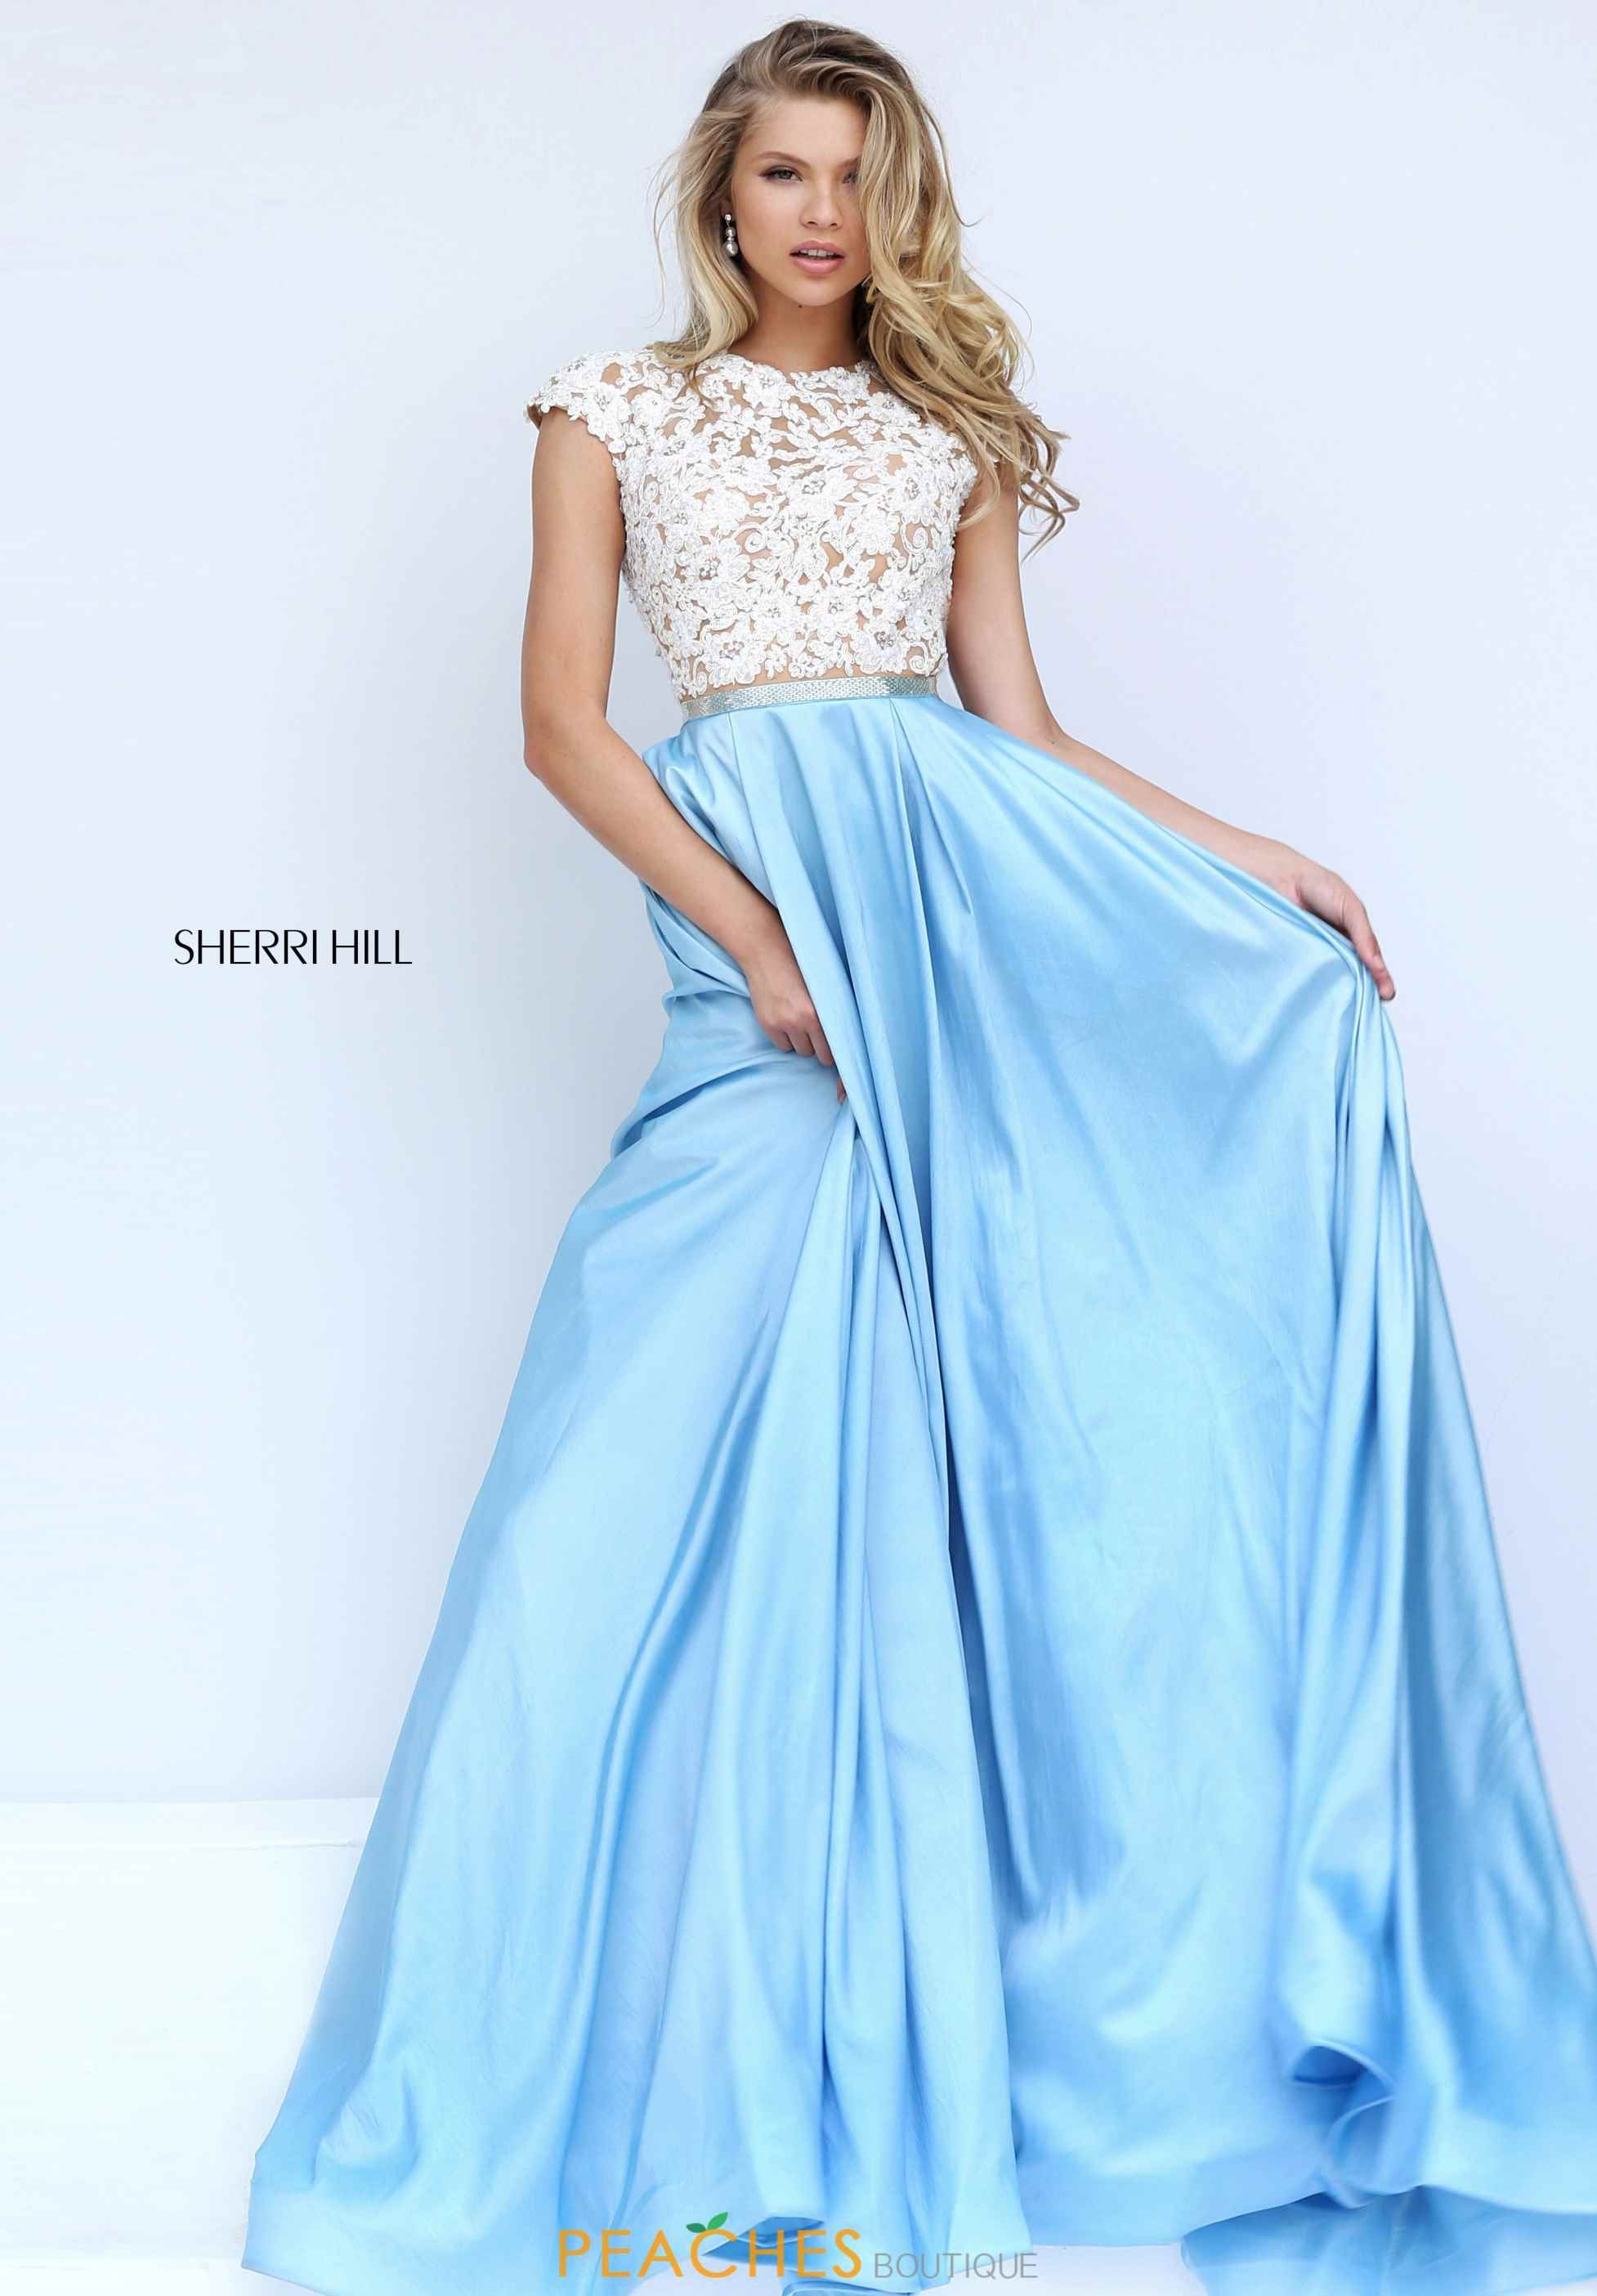 Sherri hill beaded long dress womenus fashion pinterest